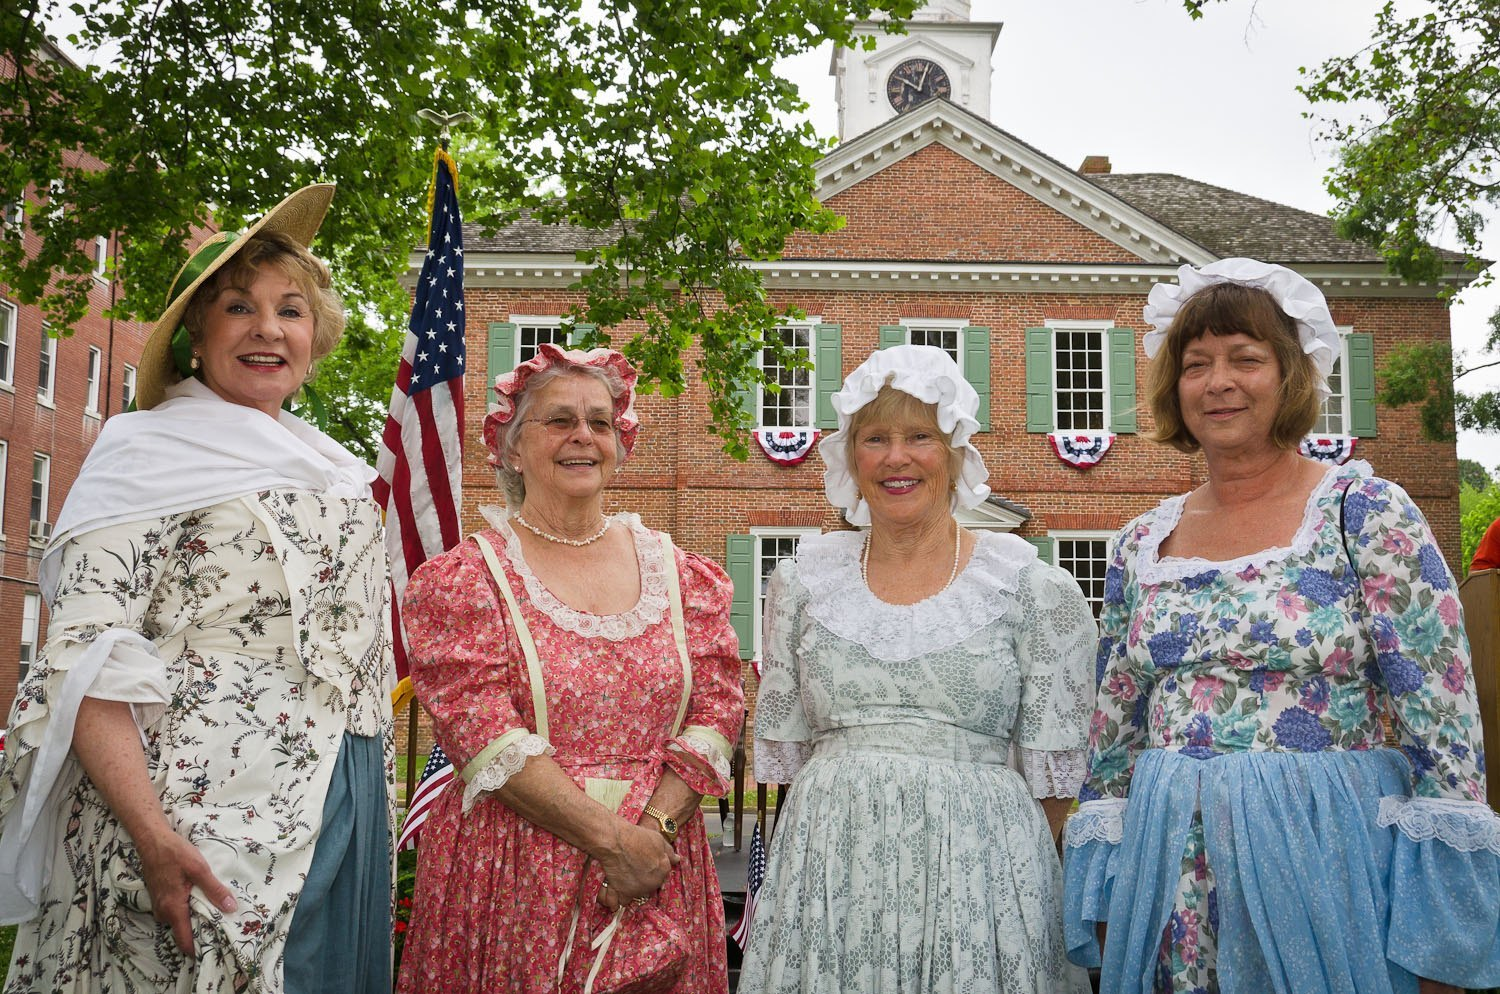 Members of the Edenton Woman's Club